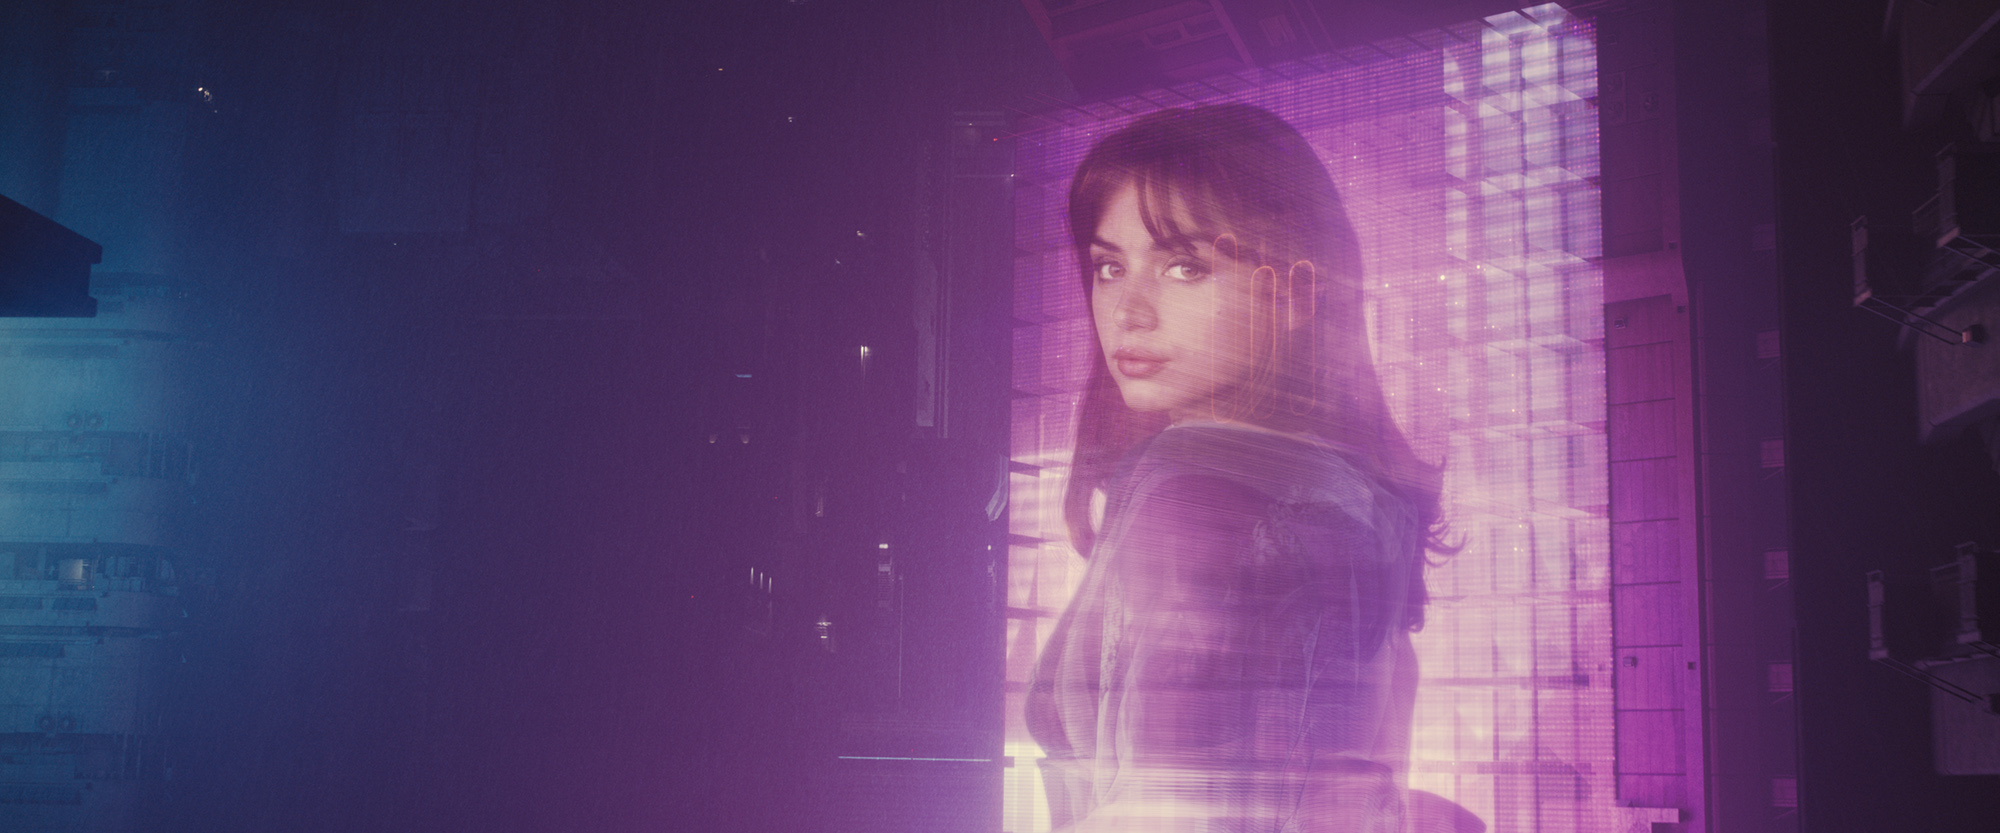 A Joi hologram advertisement in Blade Runner 2049 (©2017 ALCON ENTERTAINMENT, LLC., WARNER BROS. ENTERTAINMENT INC. AND COLUMBIA TRISTAR MARKETING GROUP, INC. ALL RIGHTS RESERVED.)